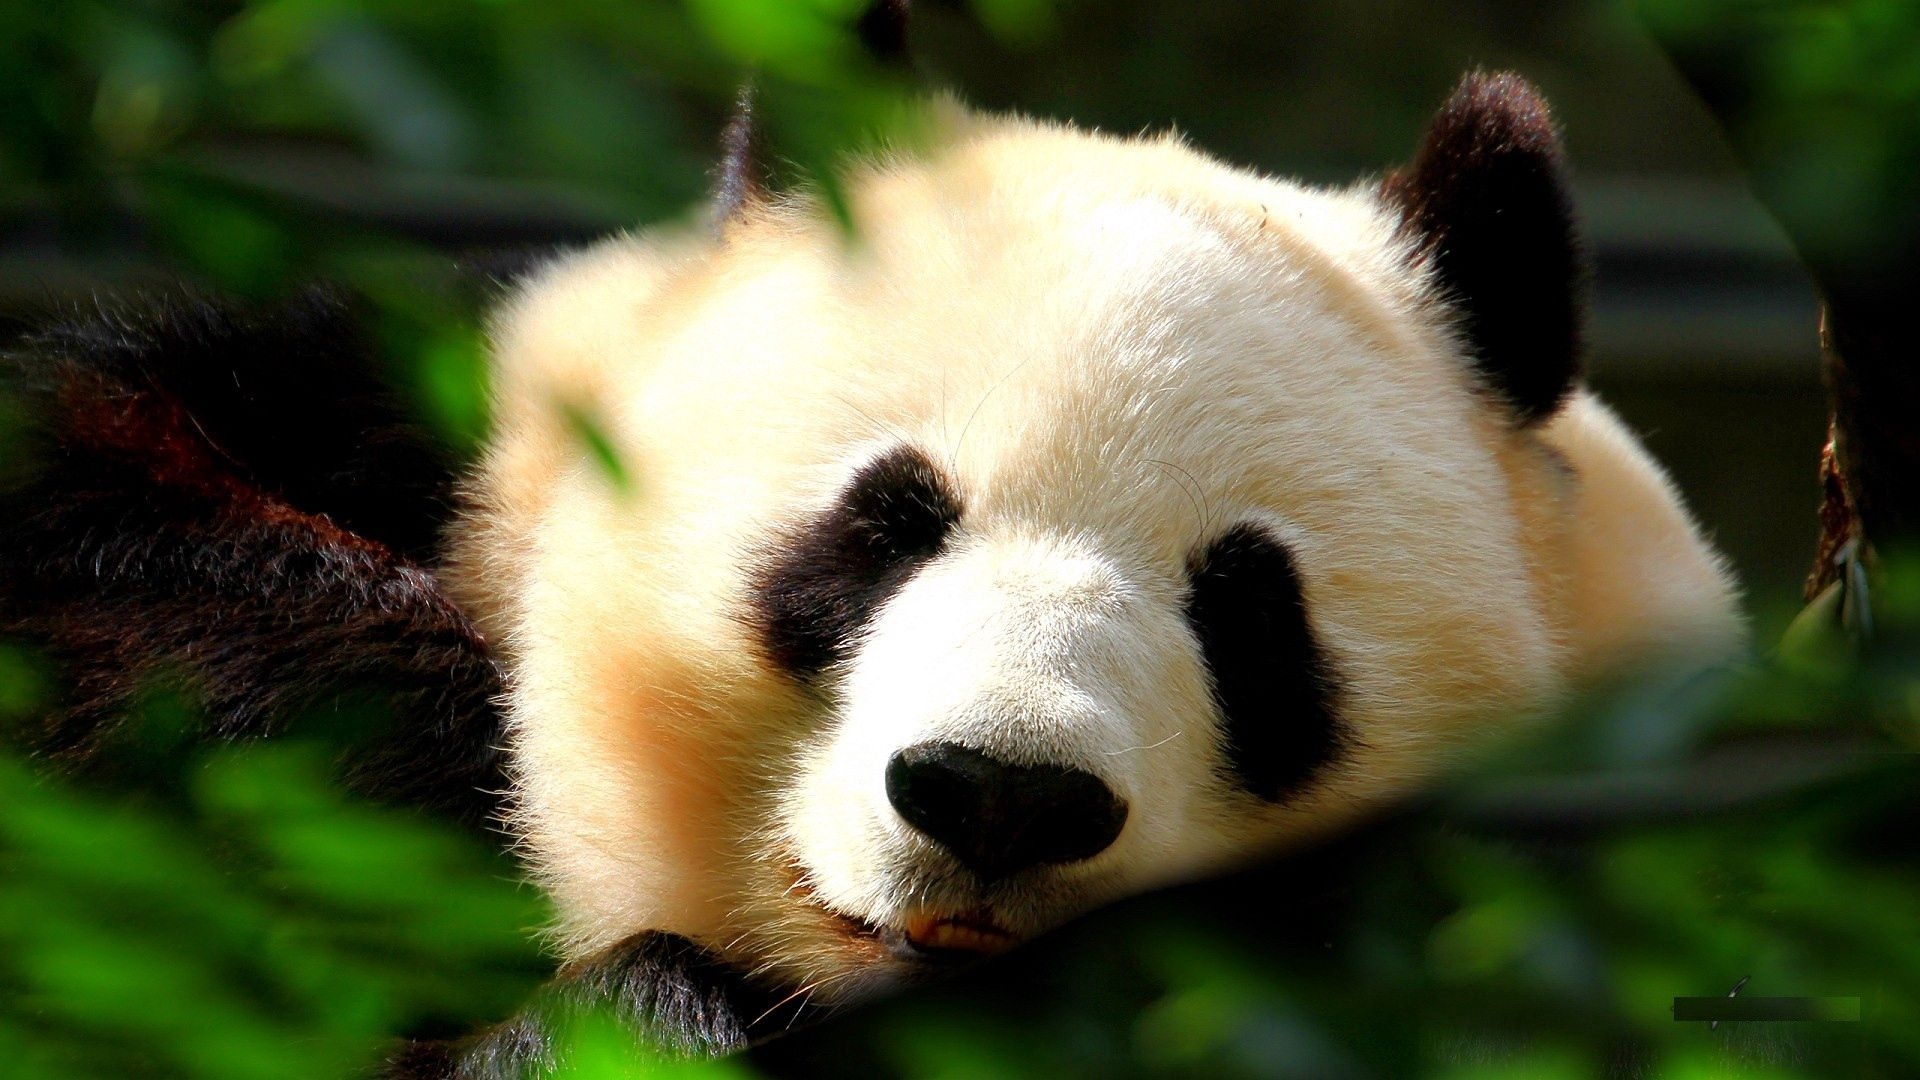 150873 download wallpaper Animals, Panda, Muzzle, Grass, Sleep, Dream screensavers and pictures for free